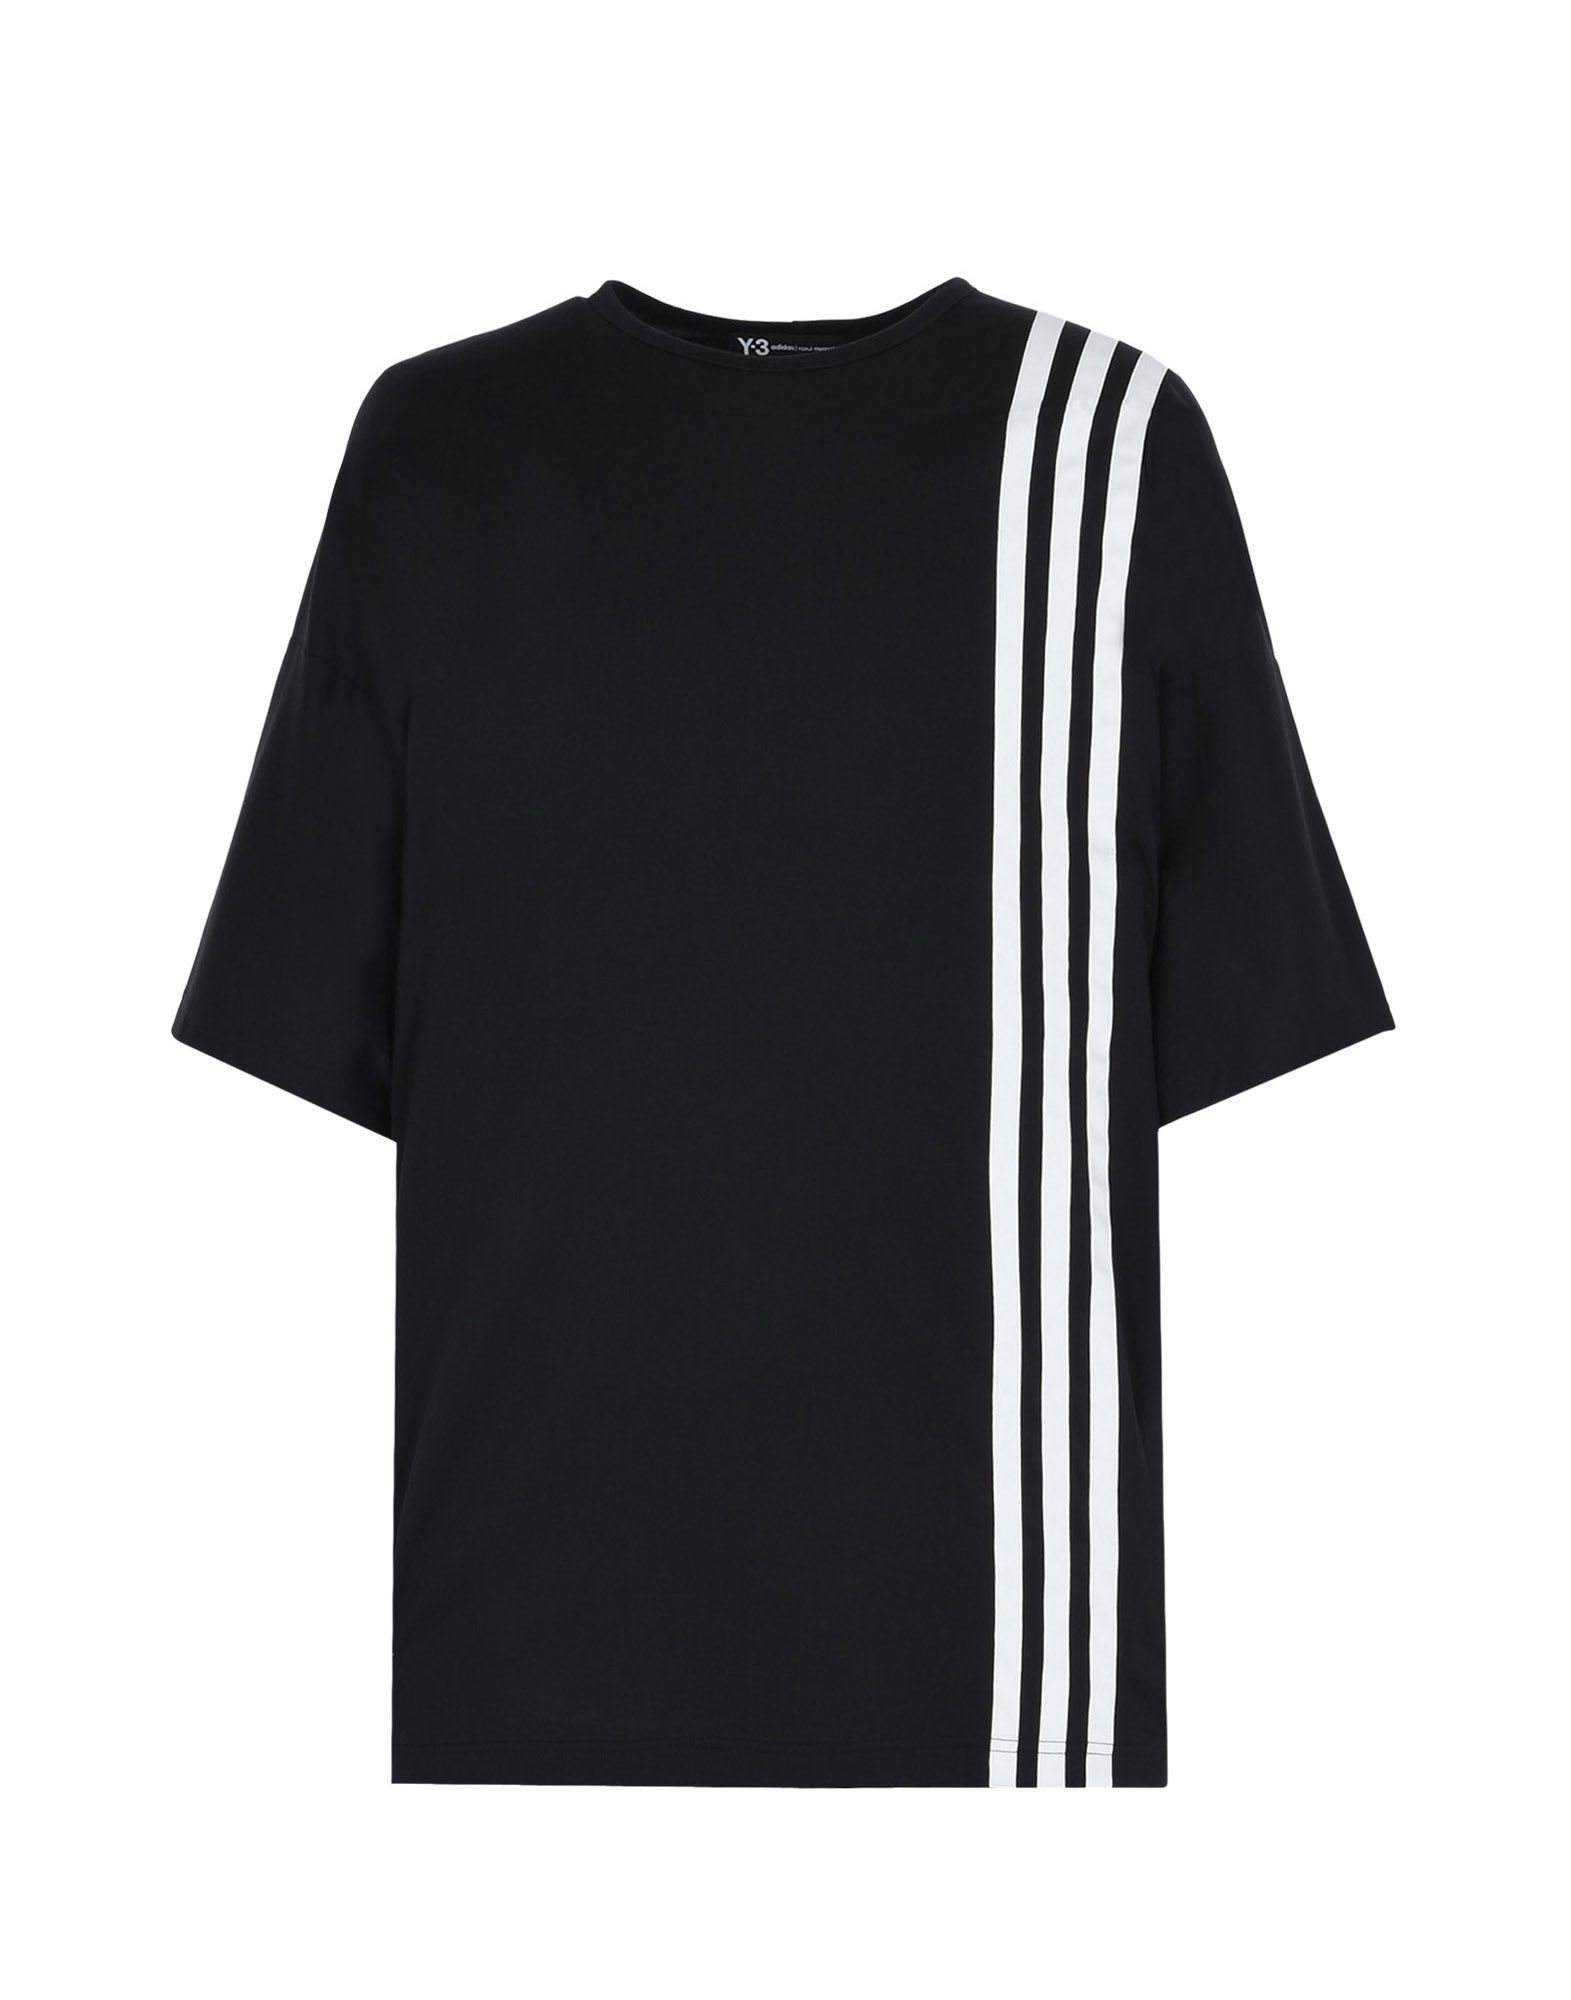 adidas 3 stripes t shirt uomo